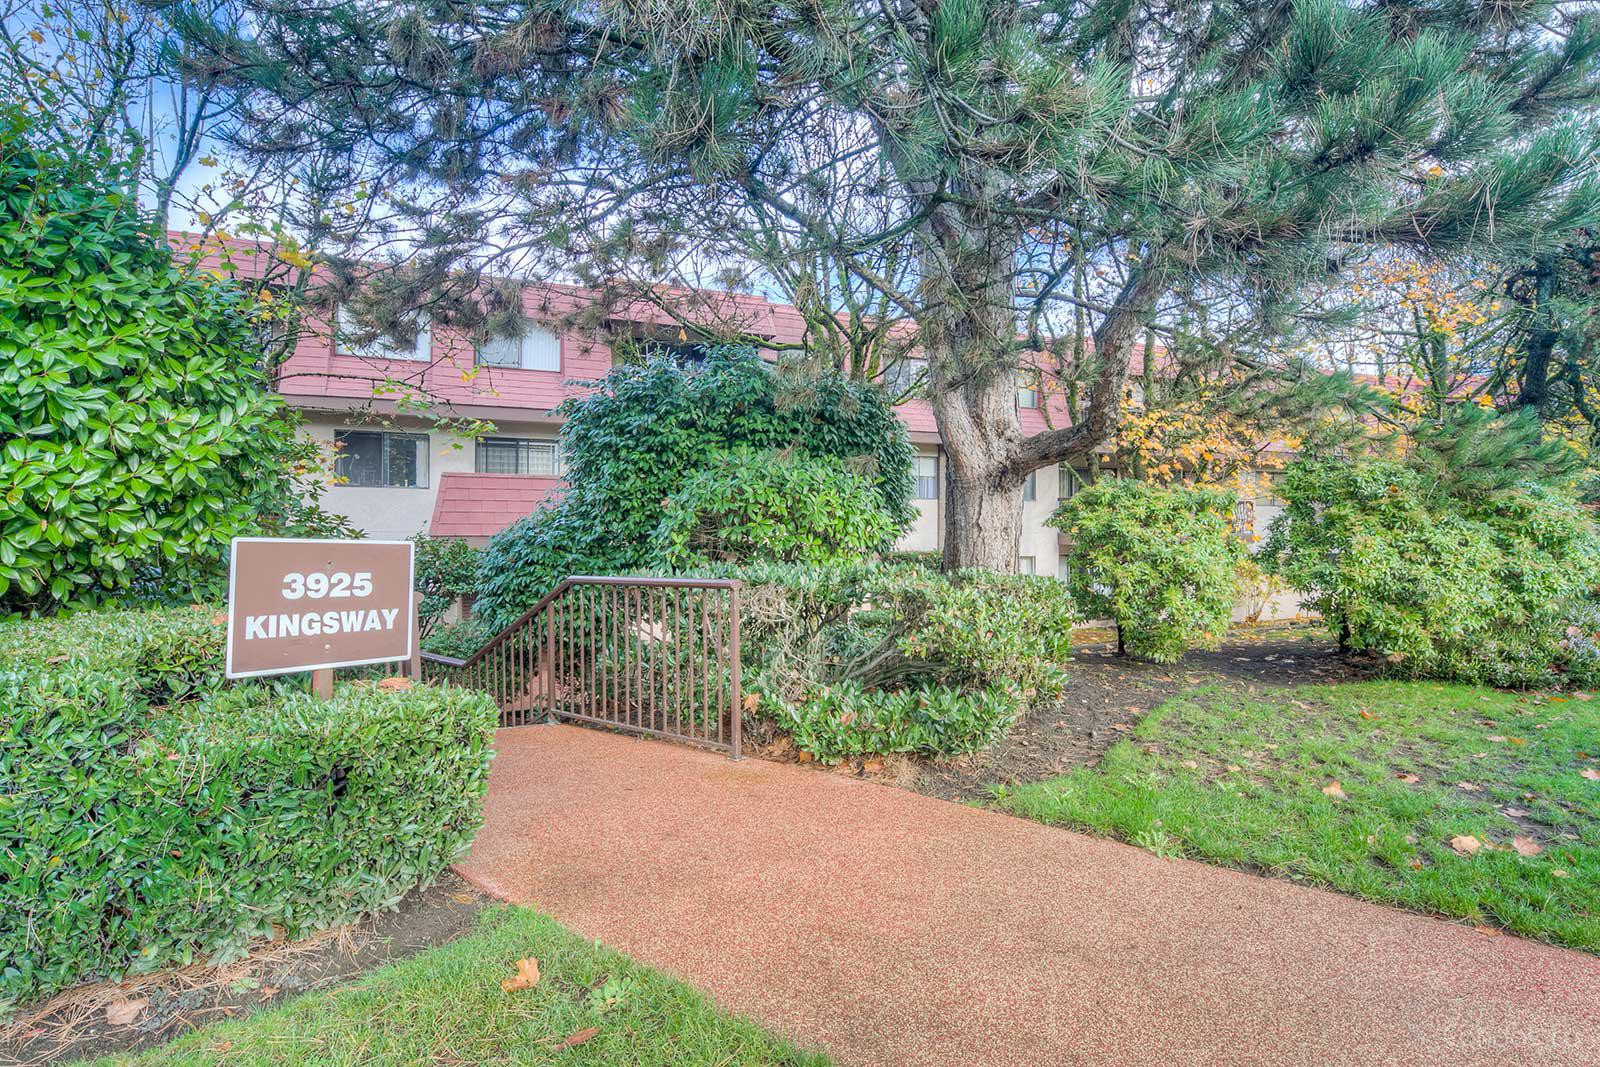 Cameray Gardens at 5715 Jersey Ave, Burnaby 1